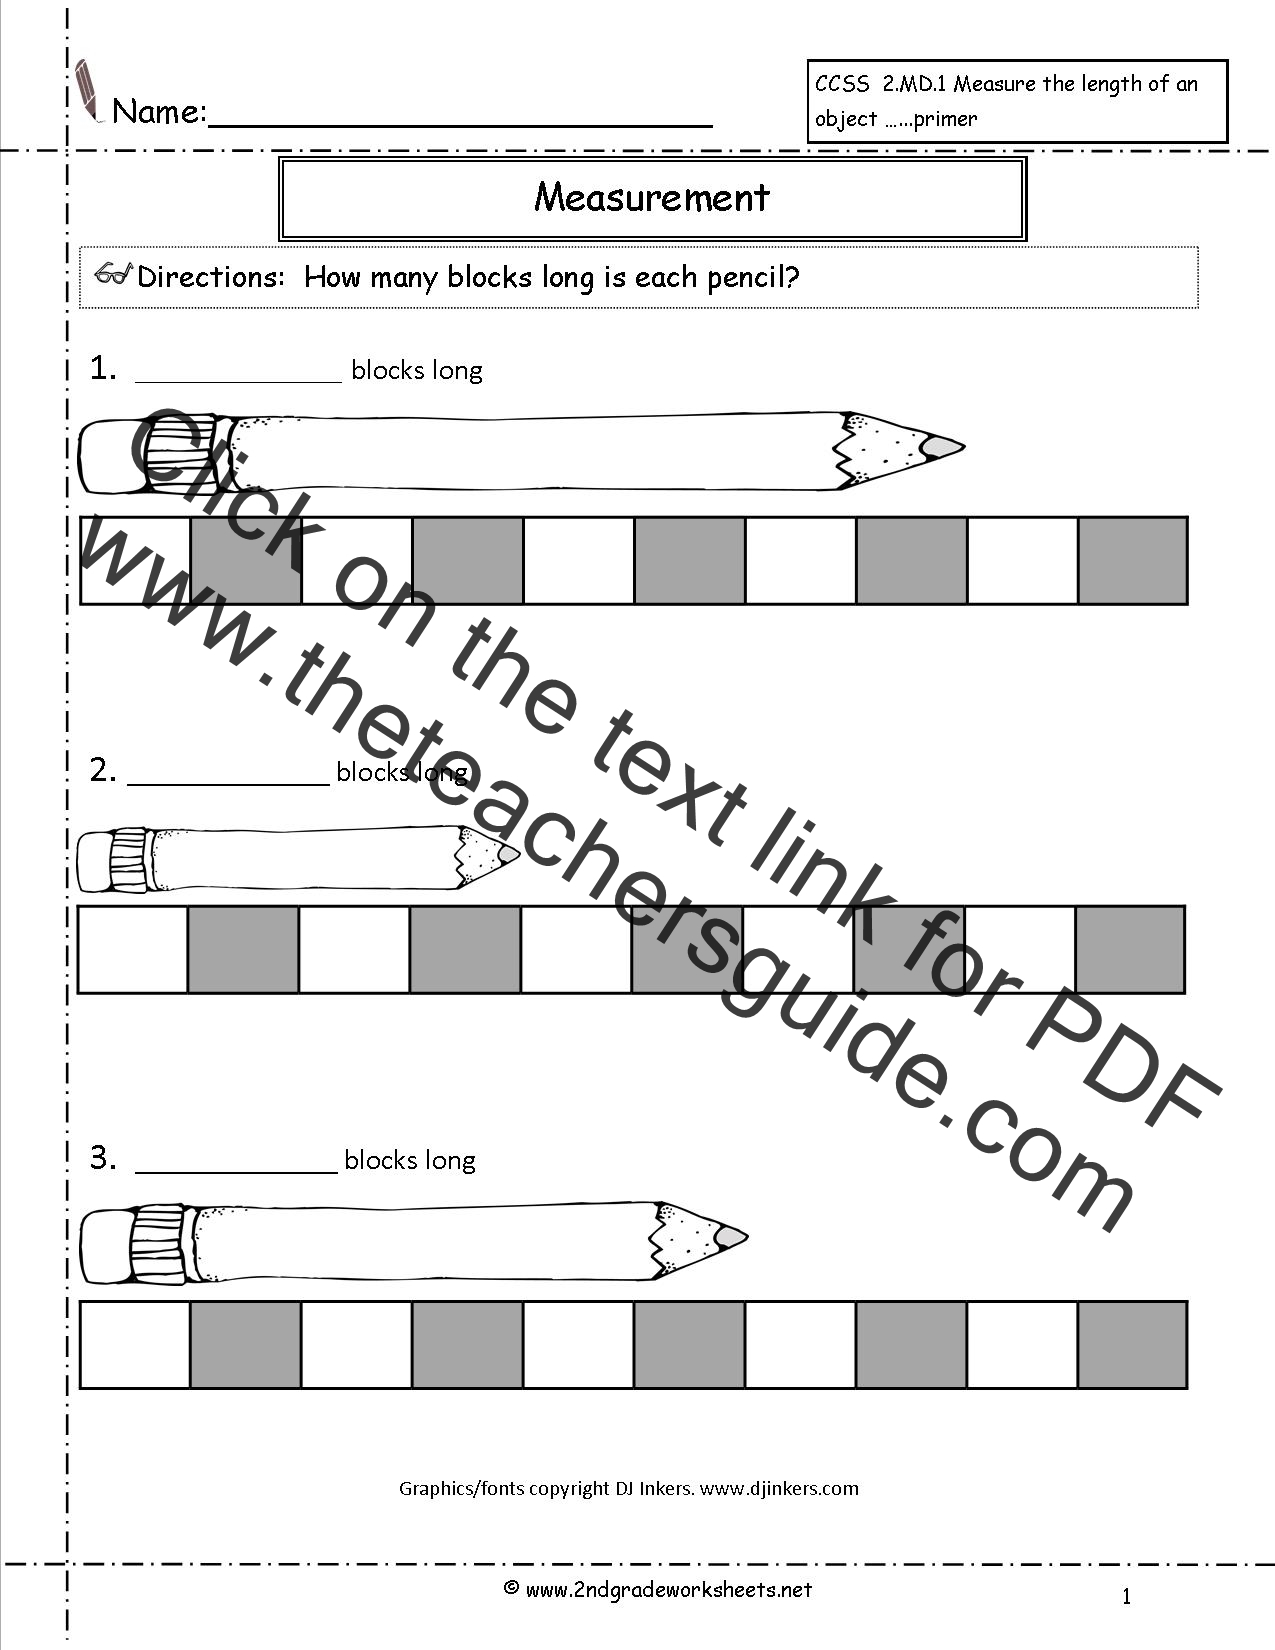 Worksheet Measuring Worksheets Kindergarten measuring worksheet abitlikethis common core state standards 2 md 1 measurement